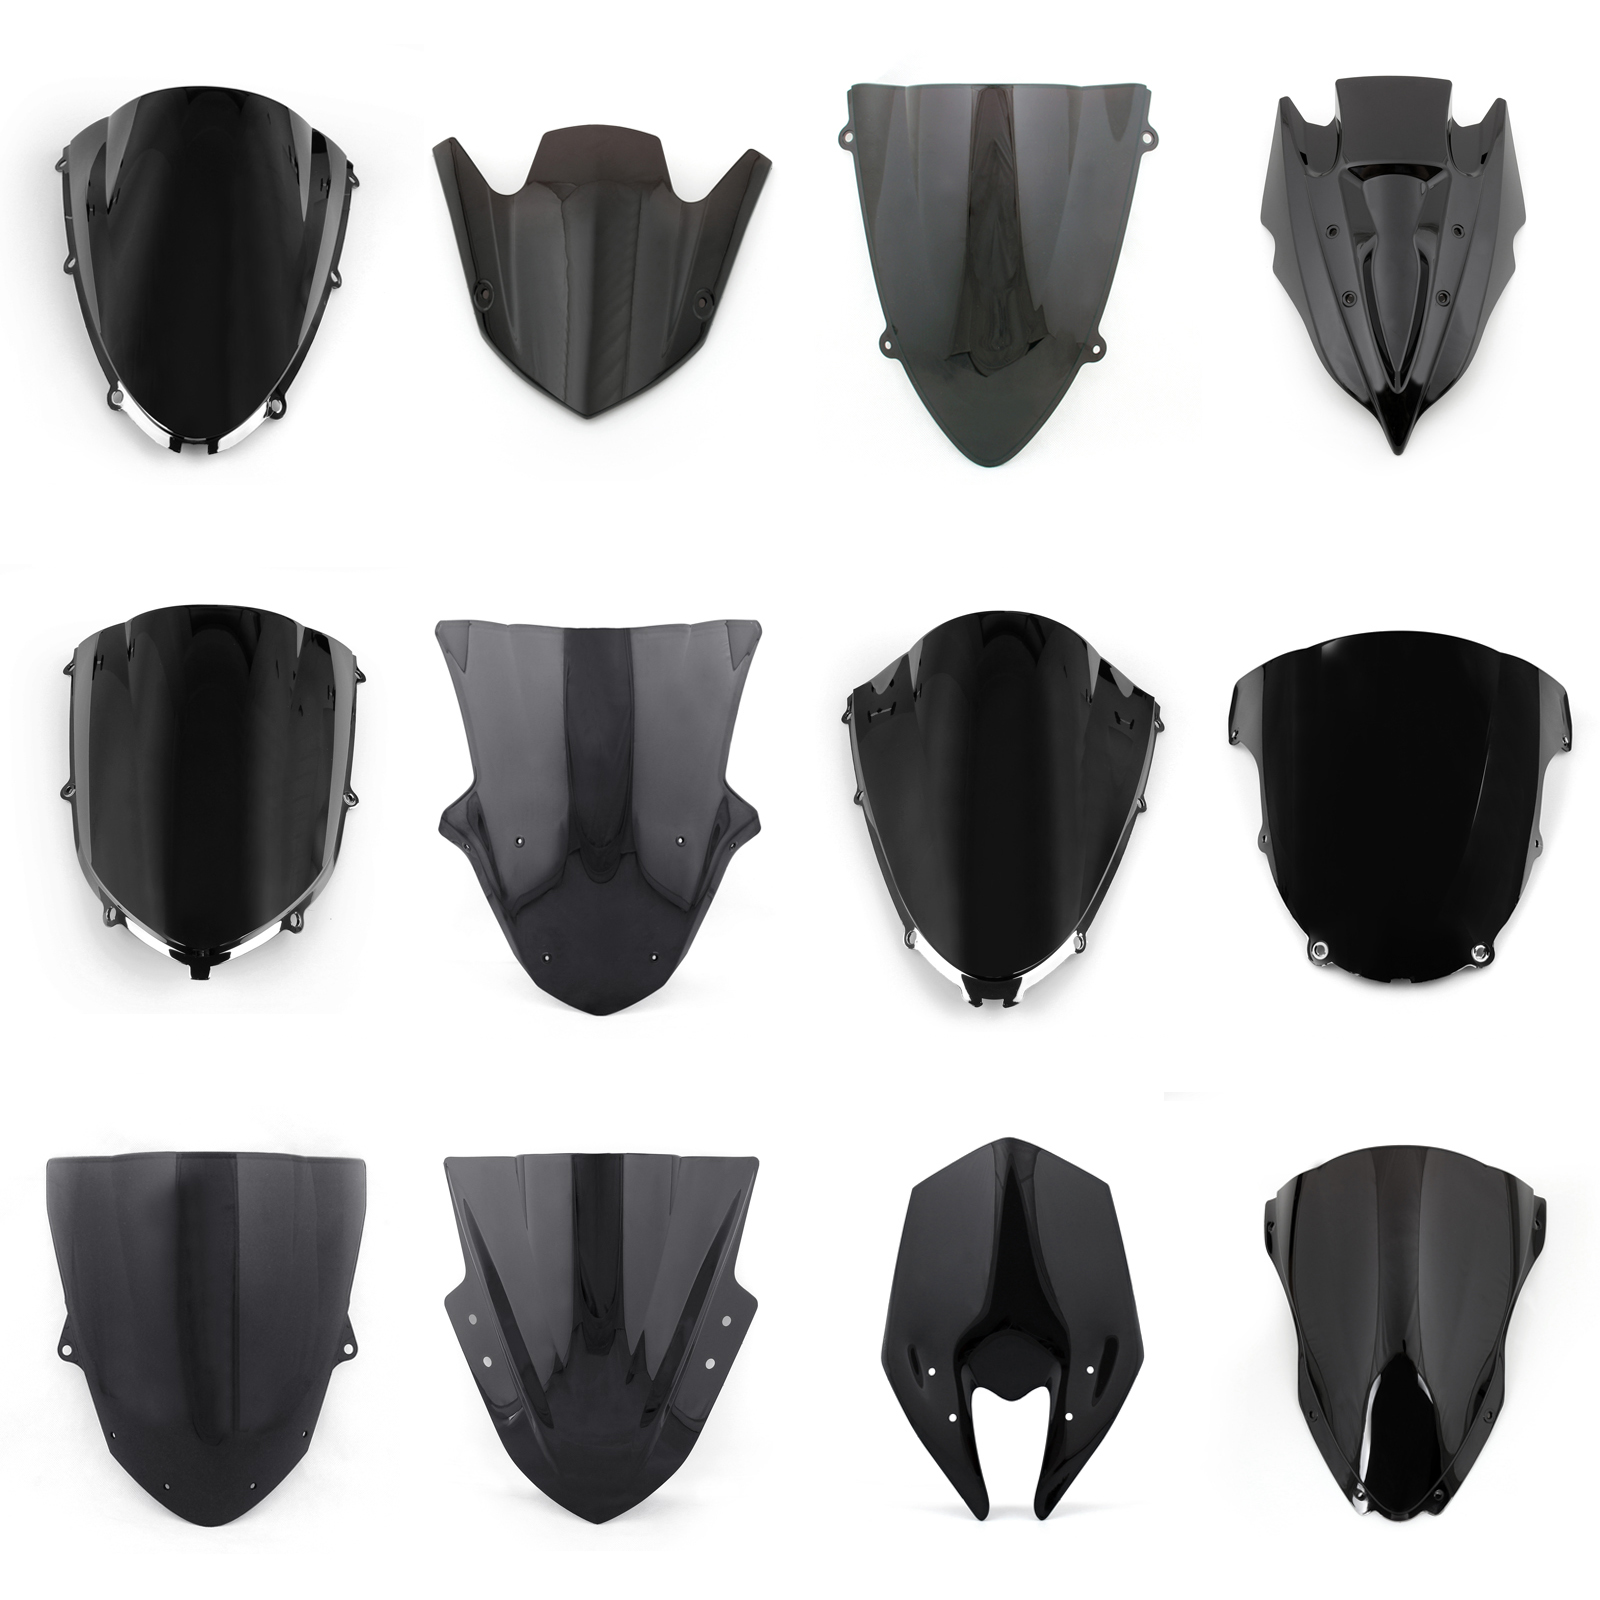 Windshield Windscreen Double Bubble For Kawasaki Zx6r Zx10r Z1000 Visor Ninja 150 Rr New Brand Pieces 1 Color Black Condition The Holes Are Pre Drilled Aftermarket Parts Modify Use